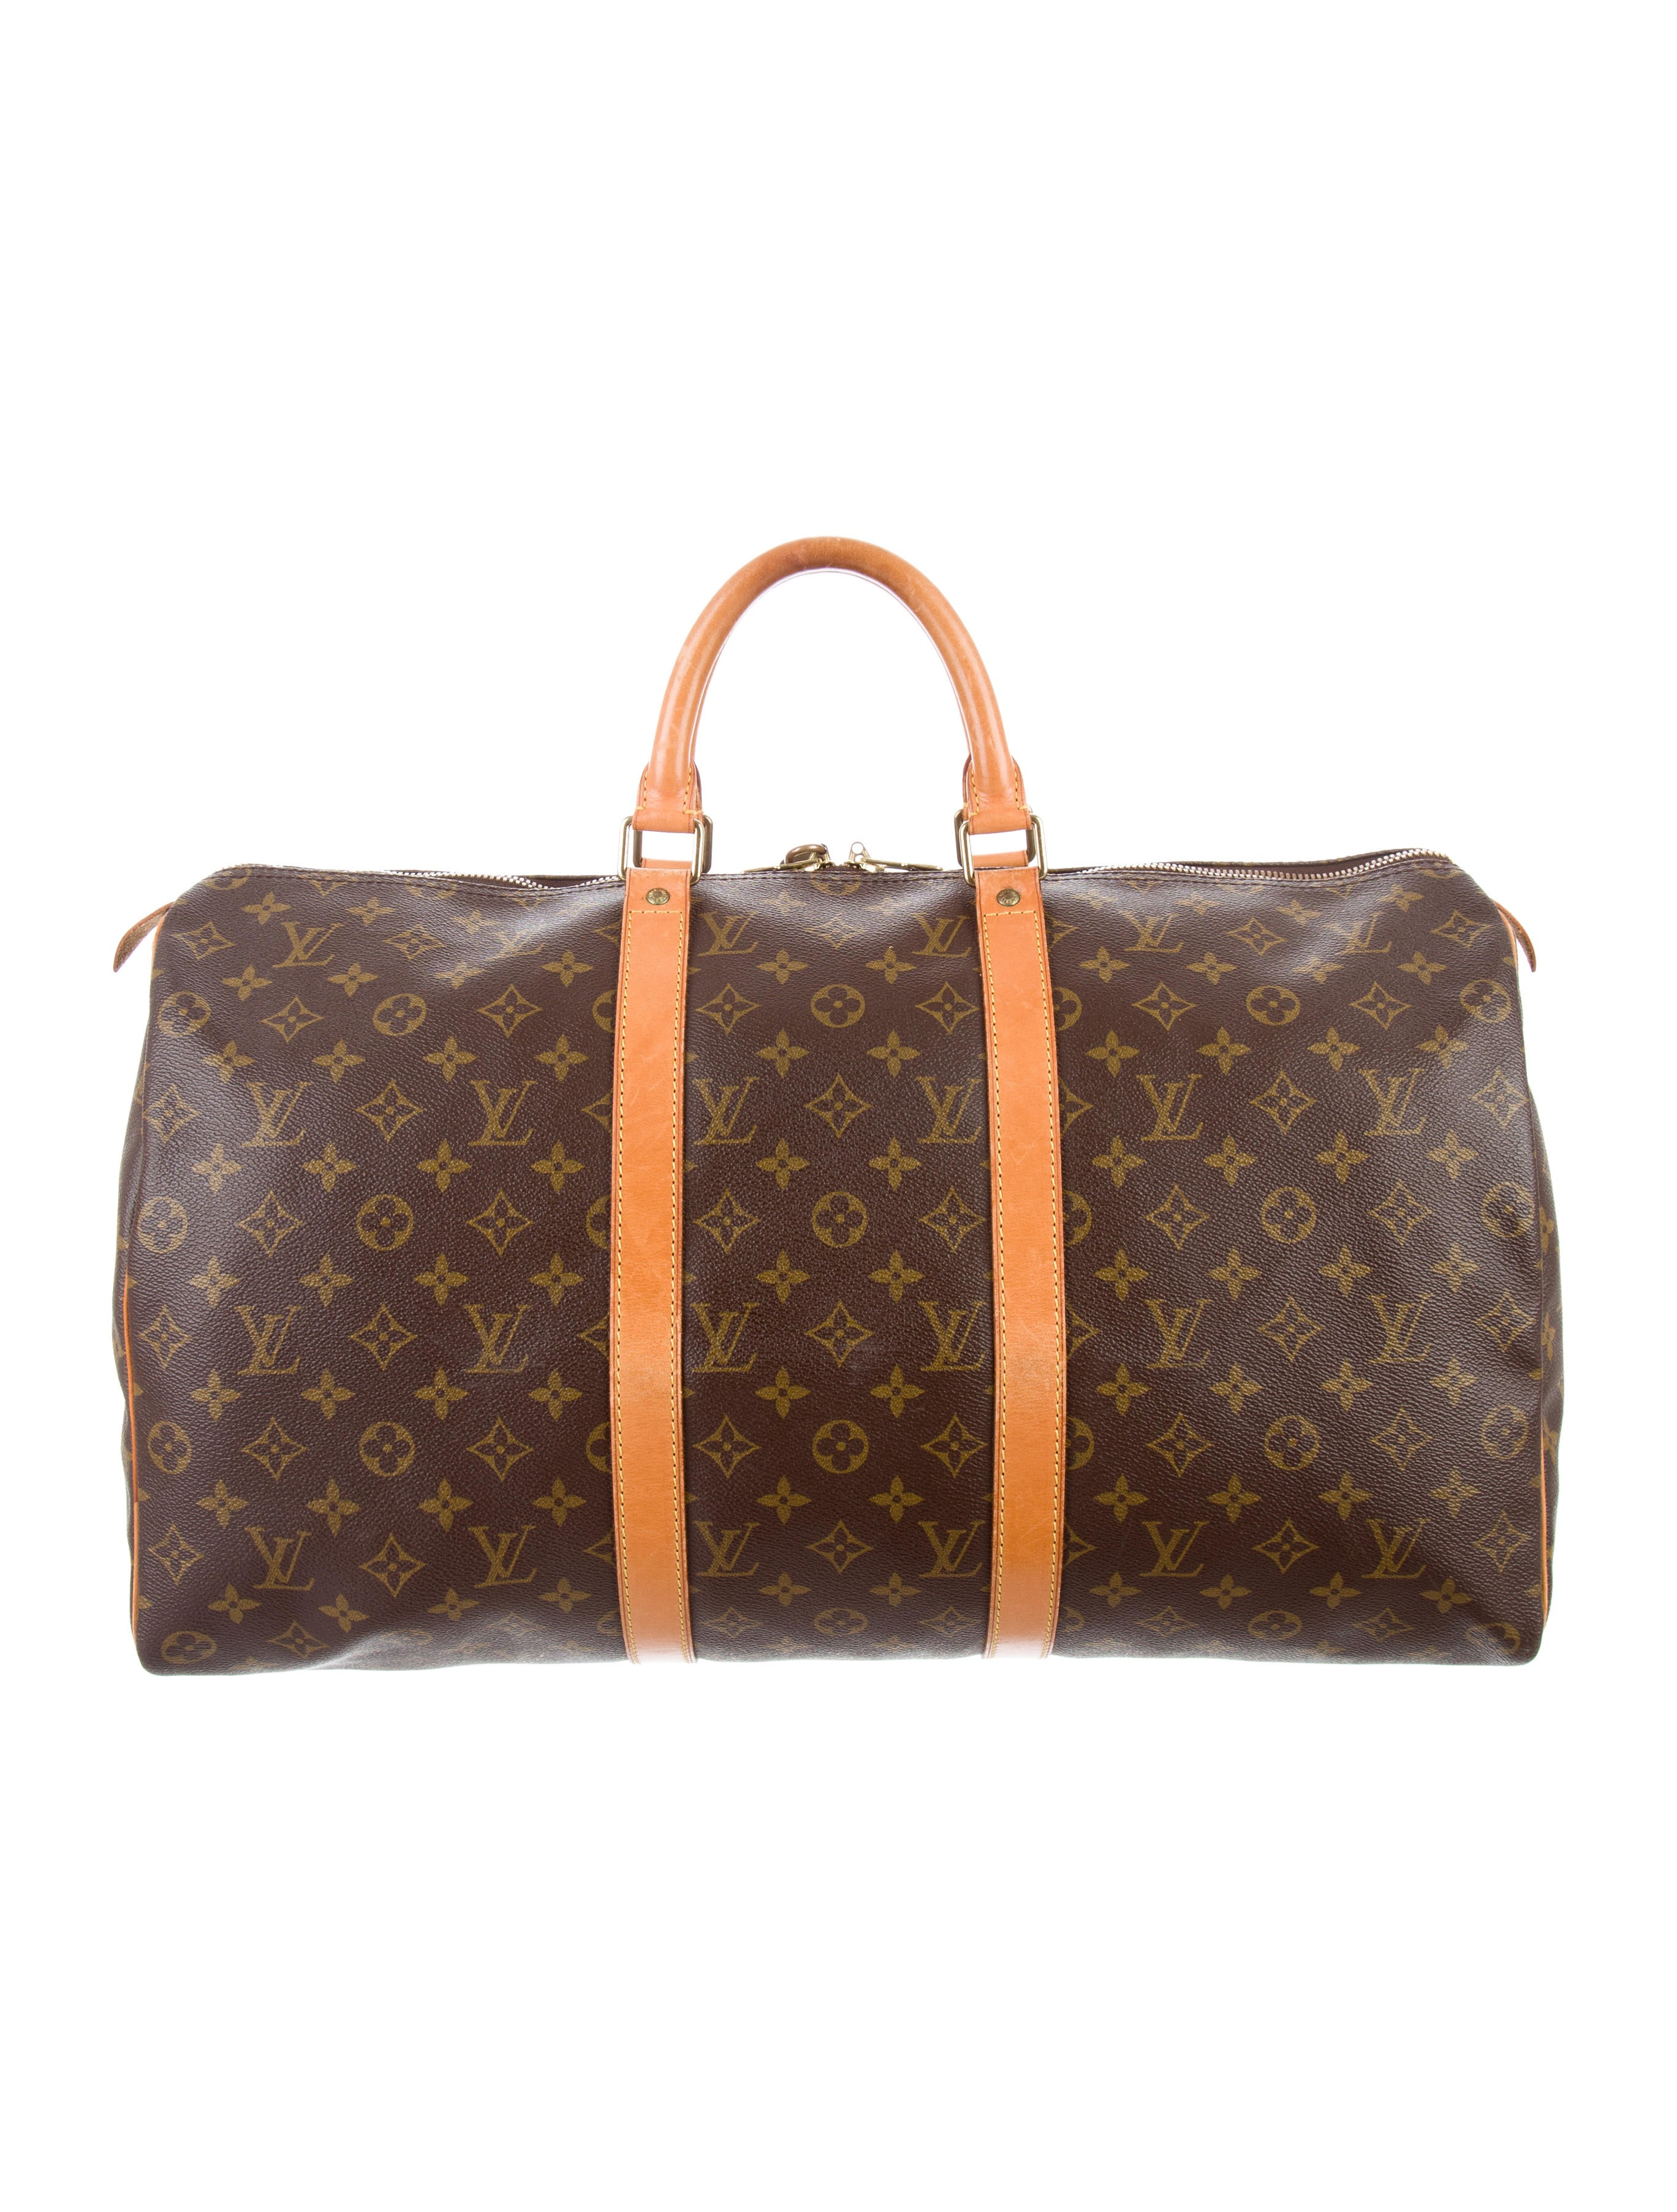 louis vuitton monogram keepall 45 bags lou129886 the realreal. Black Bedroom Furniture Sets. Home Design Ideas